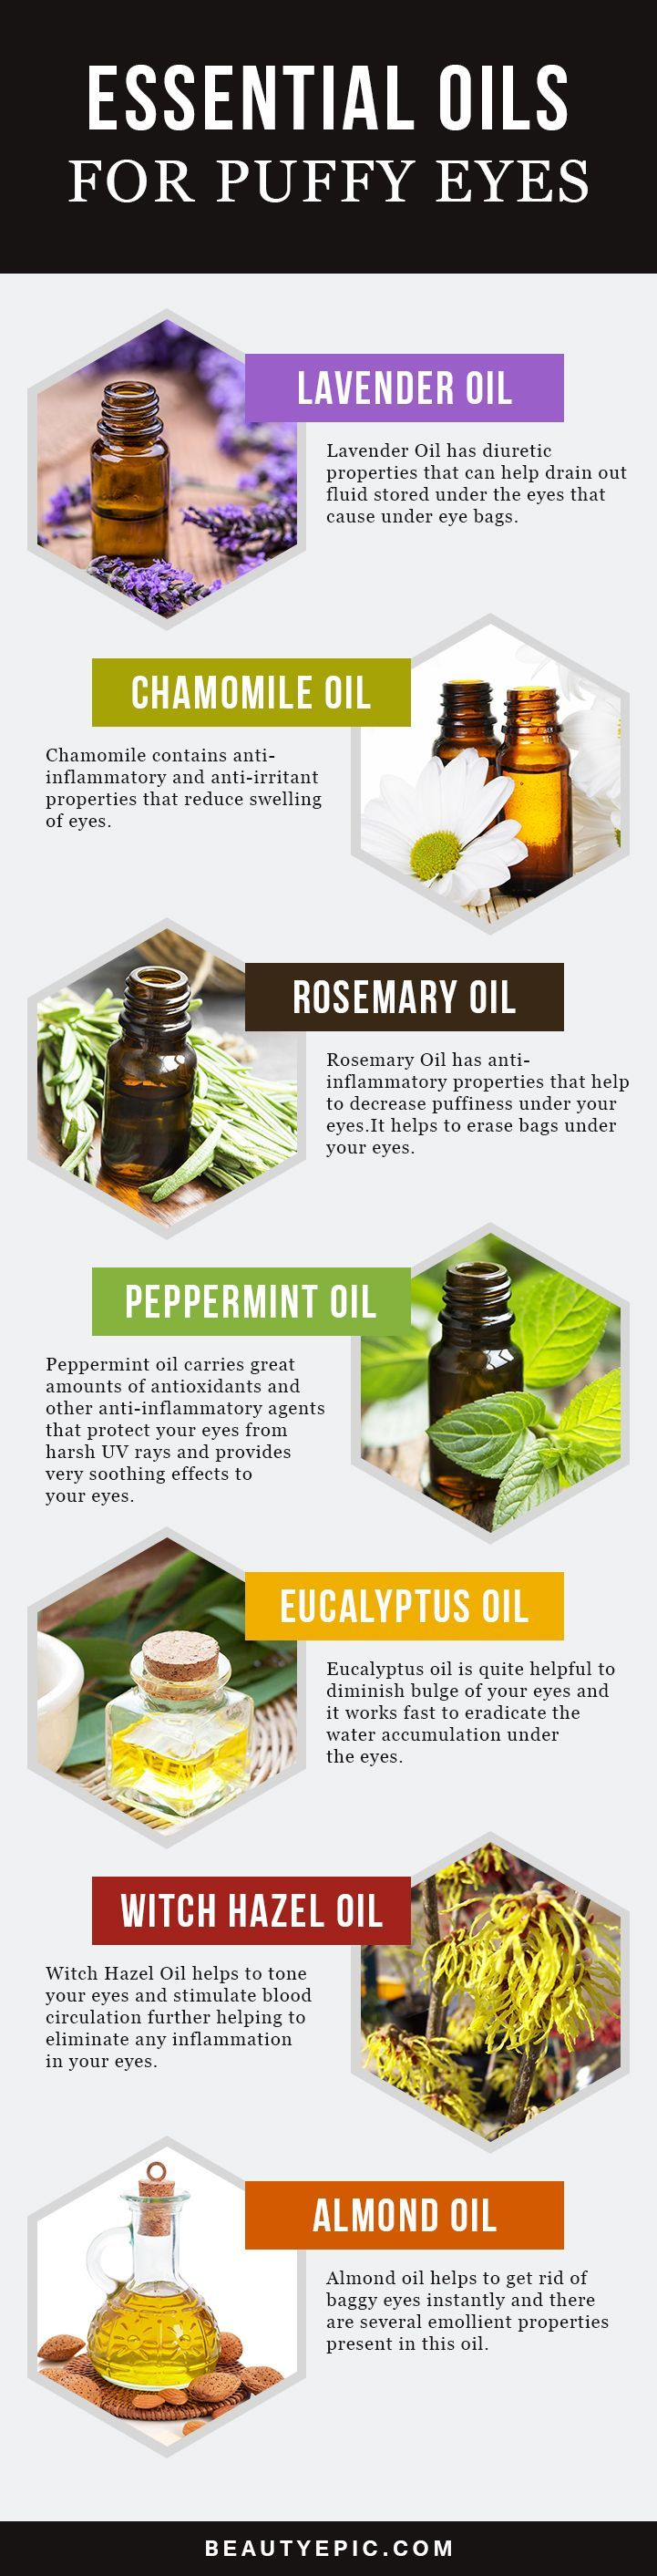 Top 10 Essential Oils to Reduce Puffiness Under Your Eyes